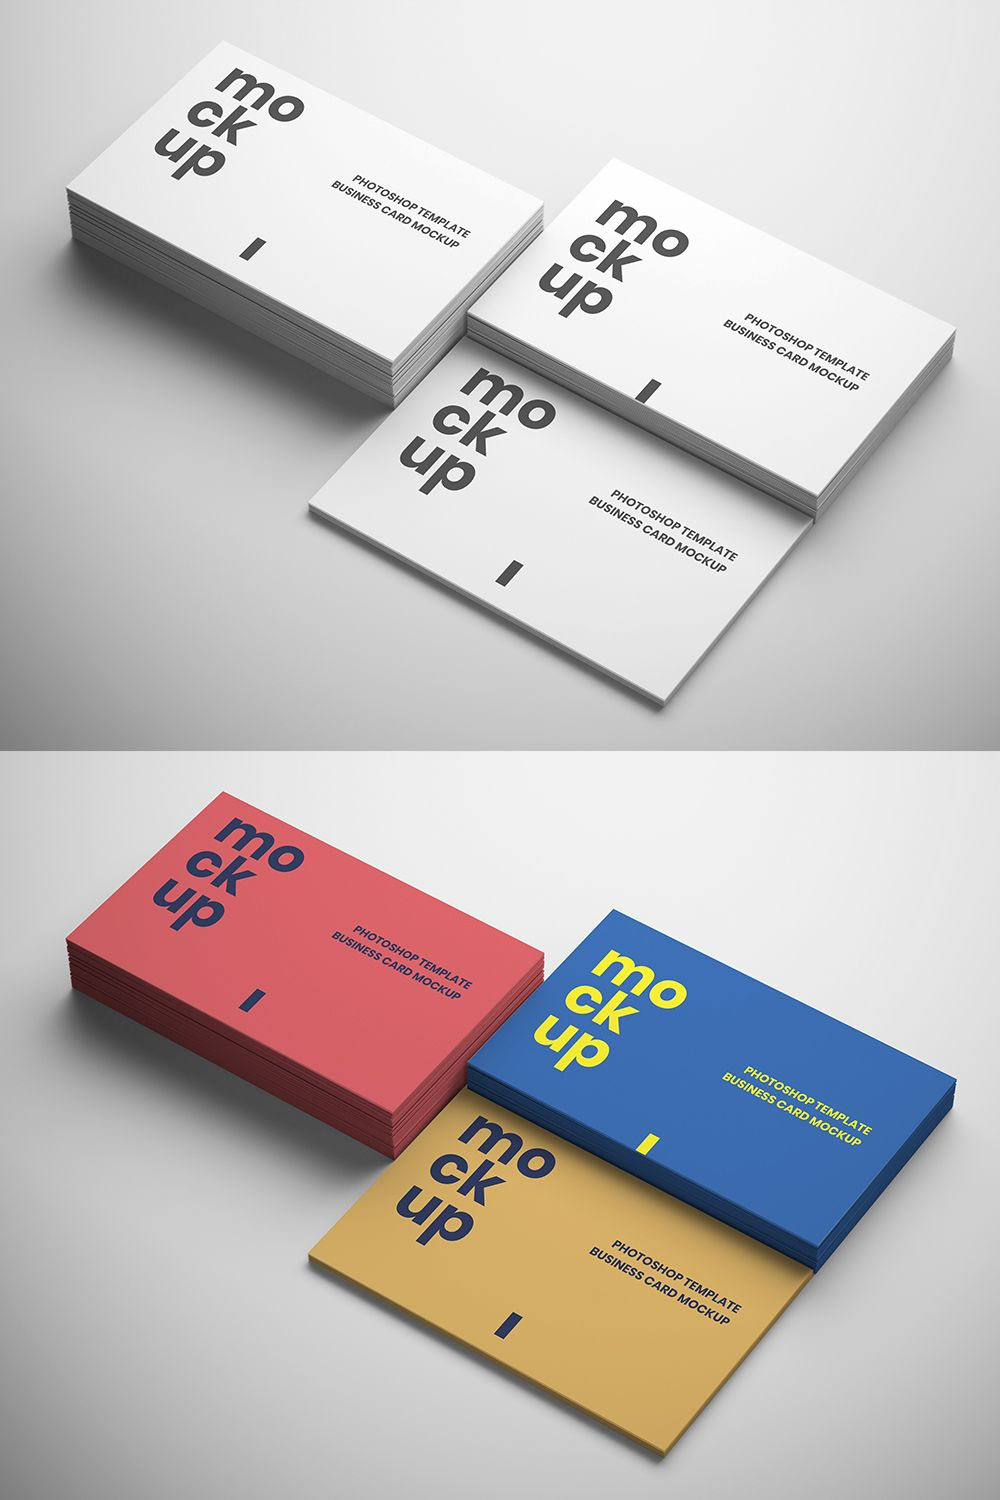 3 In 1 Business Card Mockups Free Download Business Card Mock Up Graphic Design Business Card Free Business Card Mockup